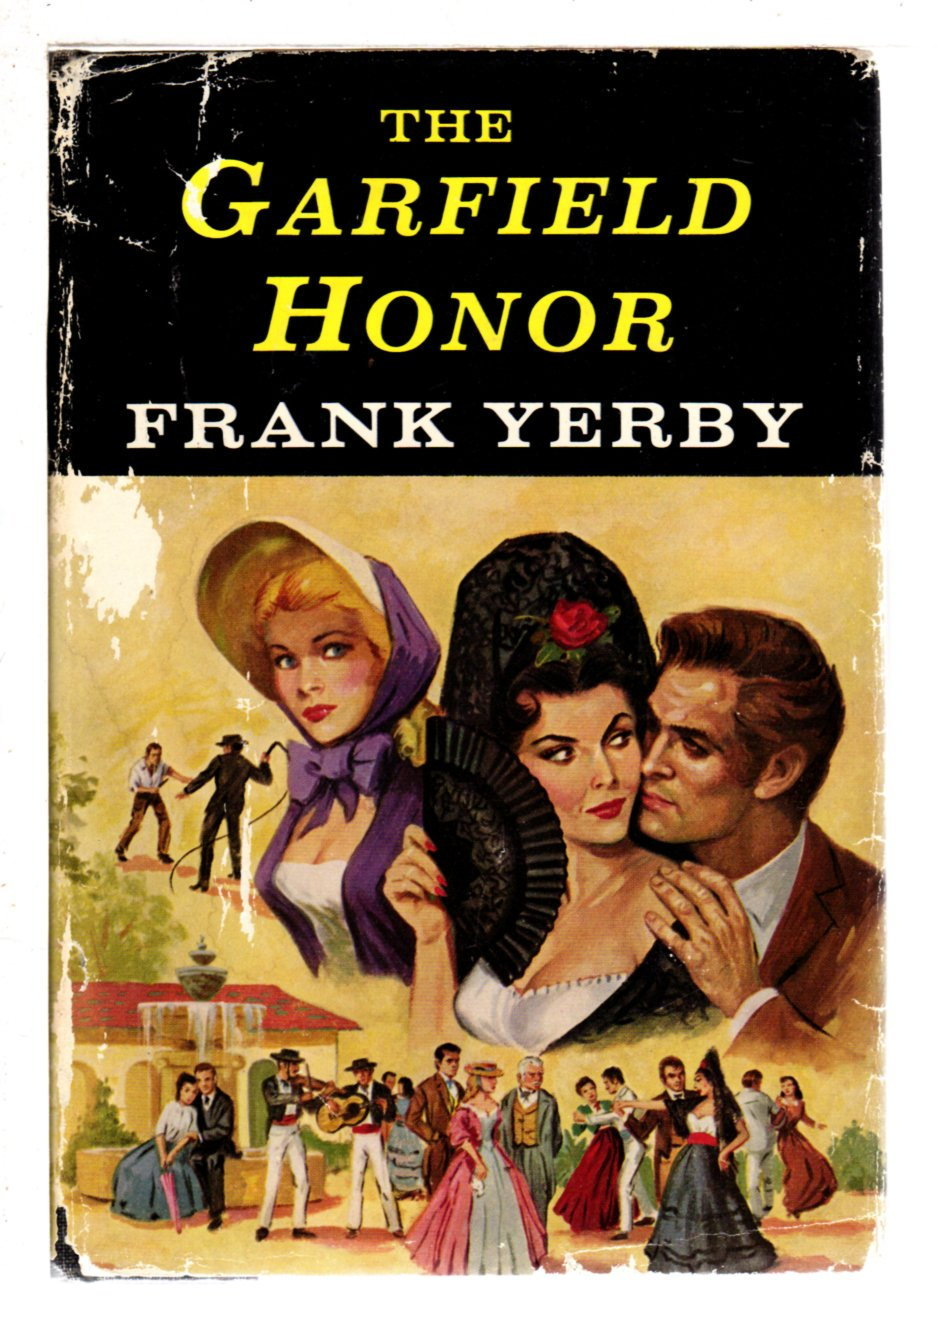 YERBY, FRANK. - THE GARFIELD HONOR.